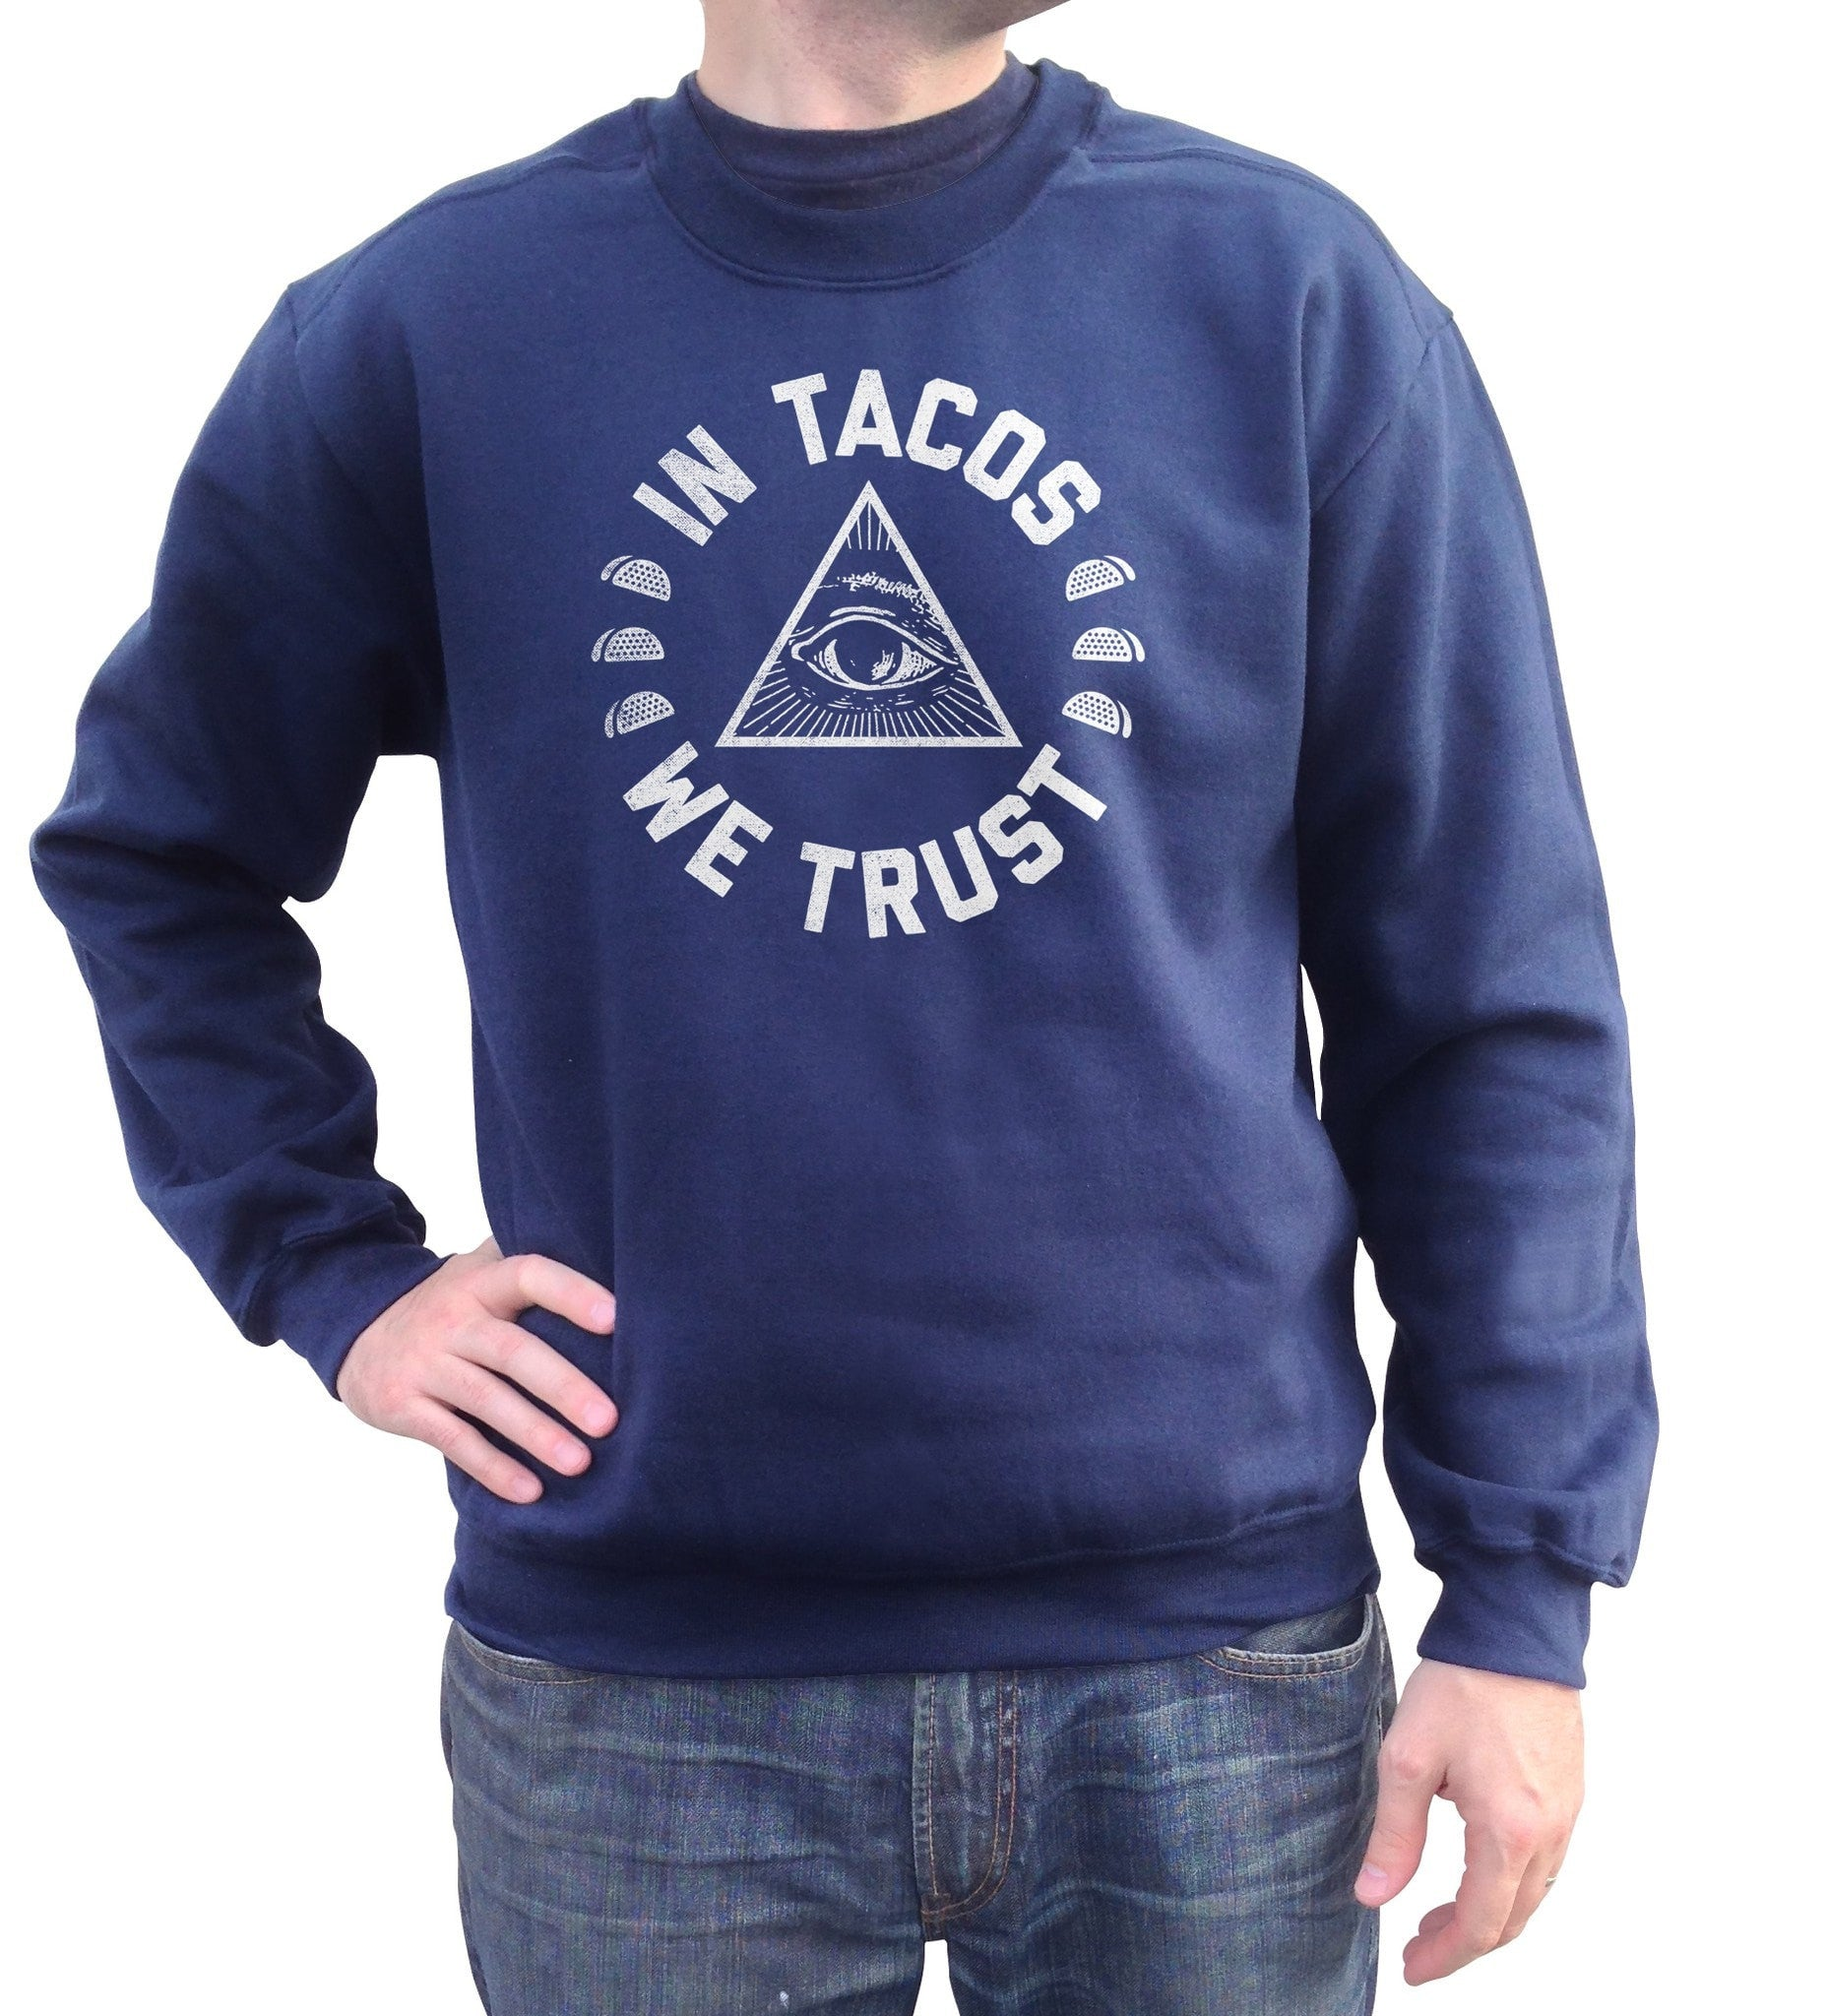 Unisex In Tacos We Trust Sweatshirt